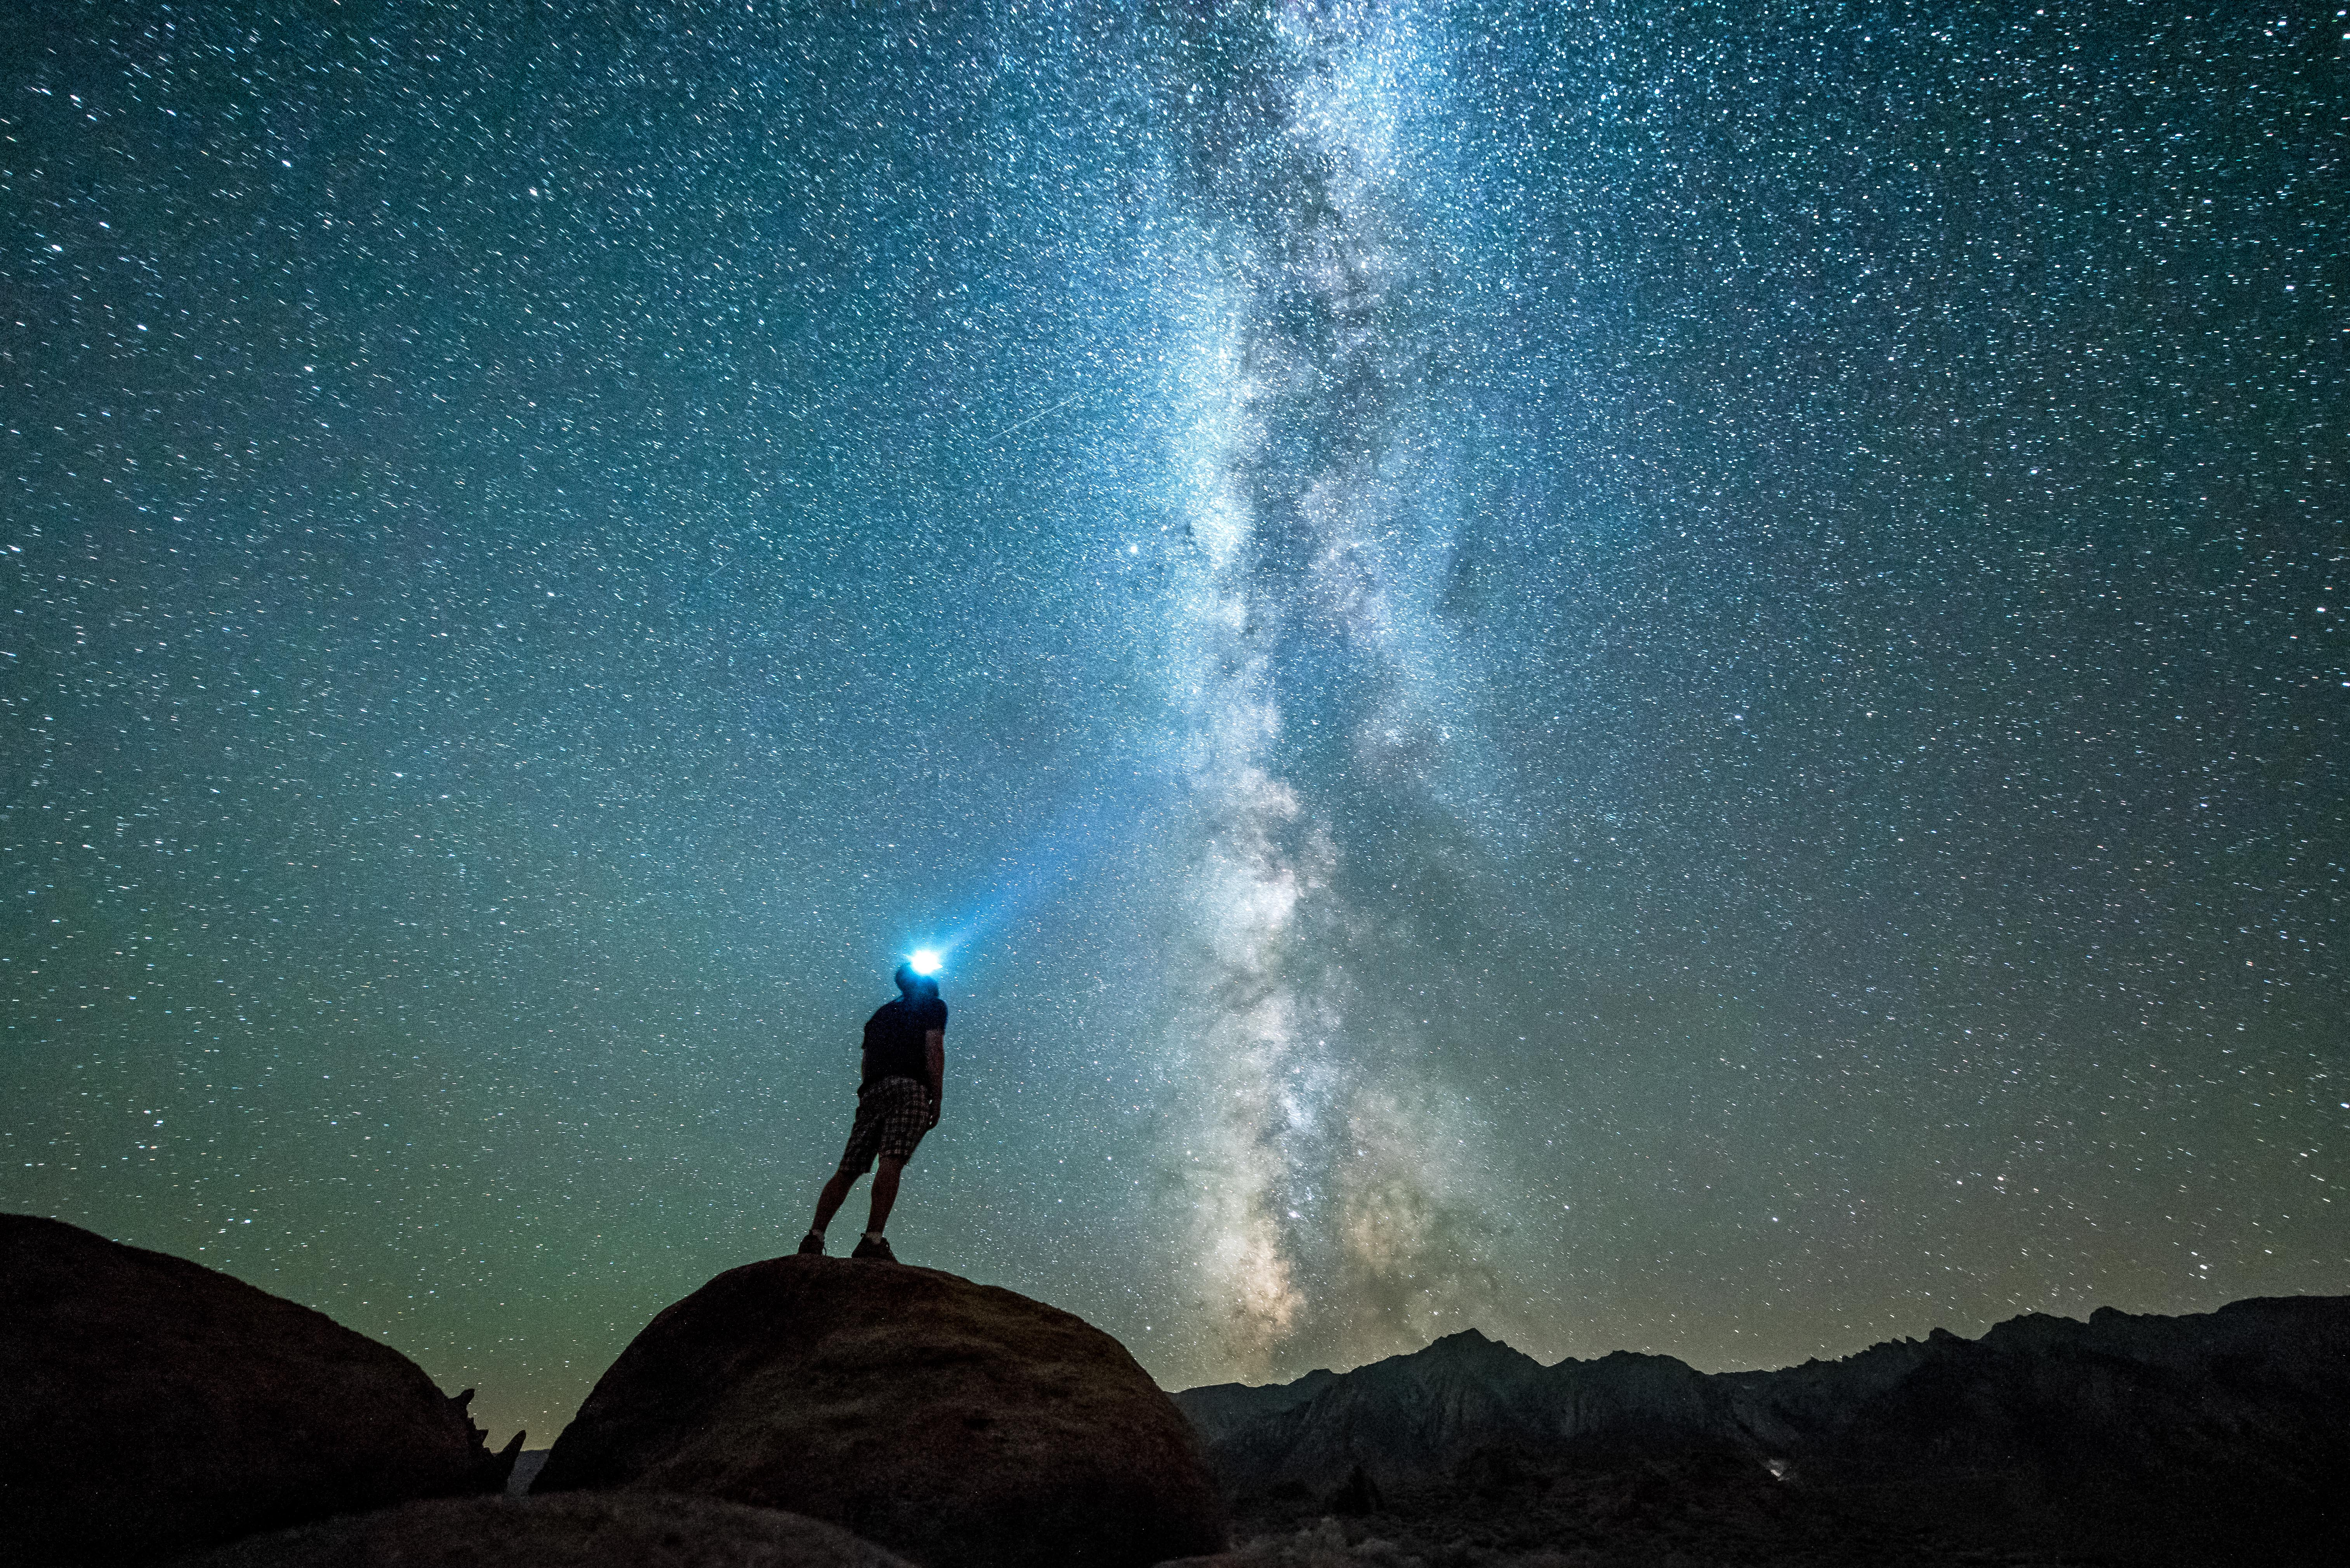 Photographing the Night Sky as part of Night Photography Week